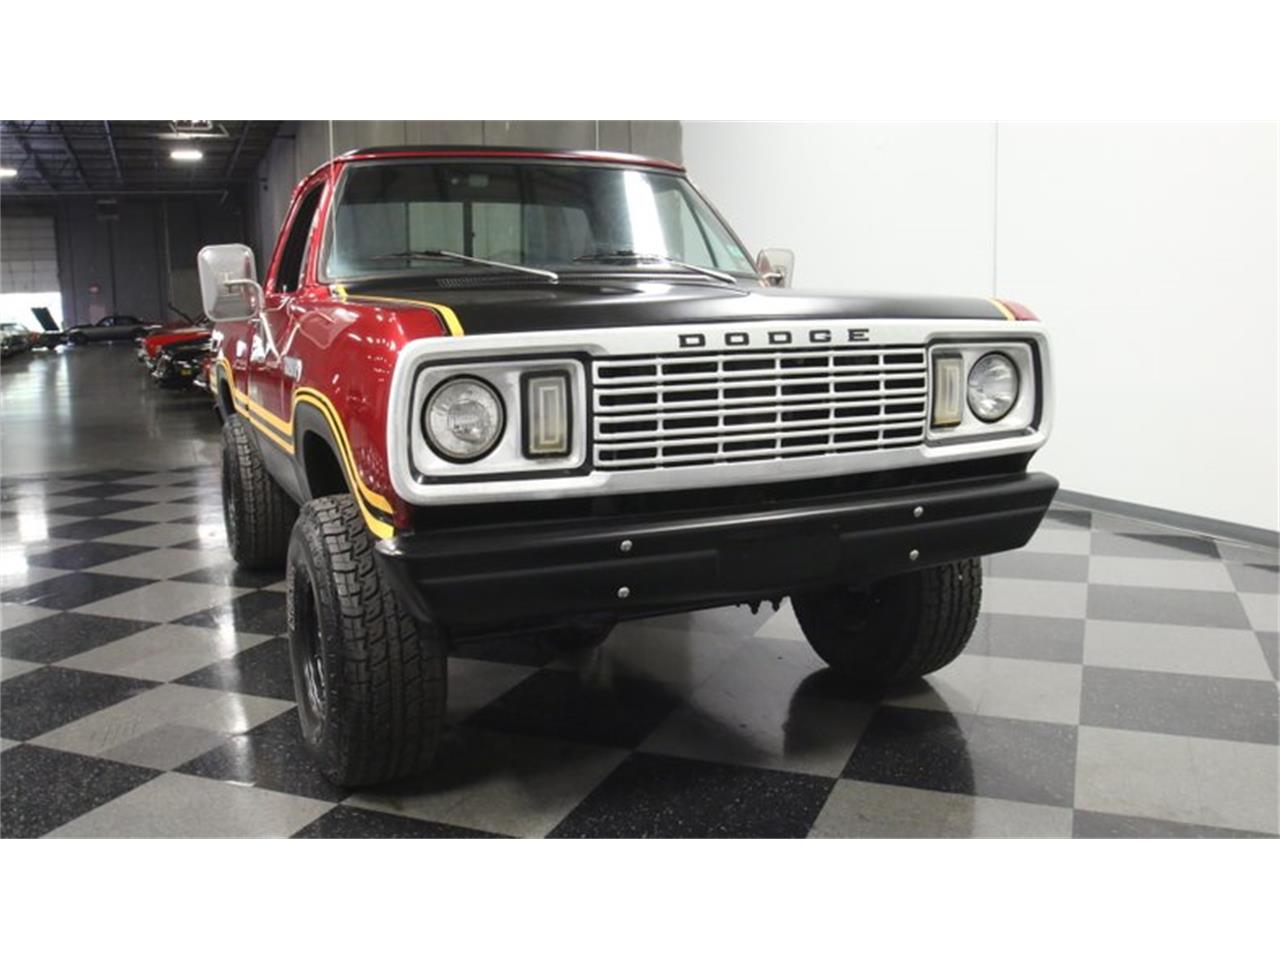 1978 Dodge Power Wagon for sale in Lithia Springs, GA – photo 18